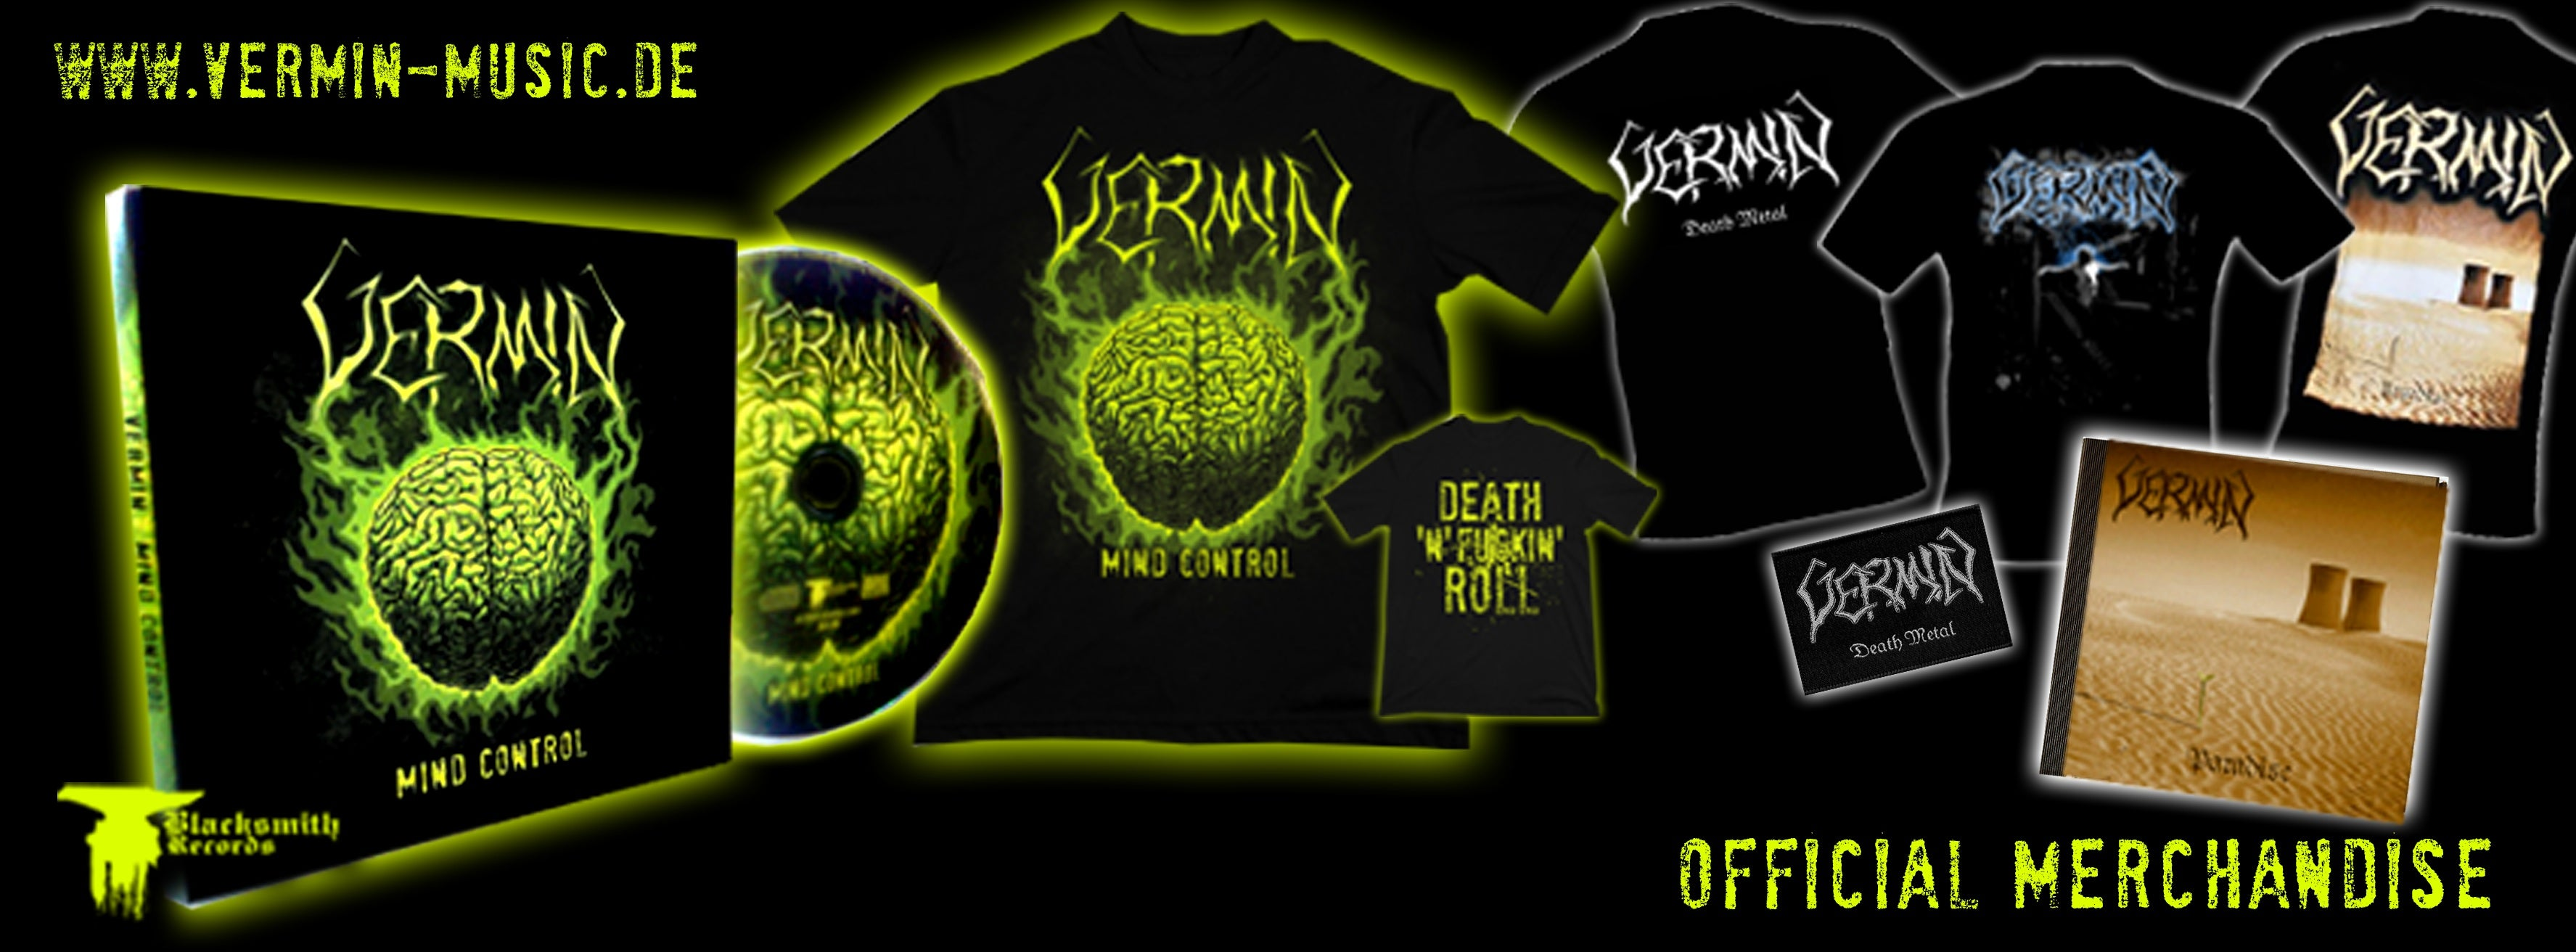 Vermin Official Merch